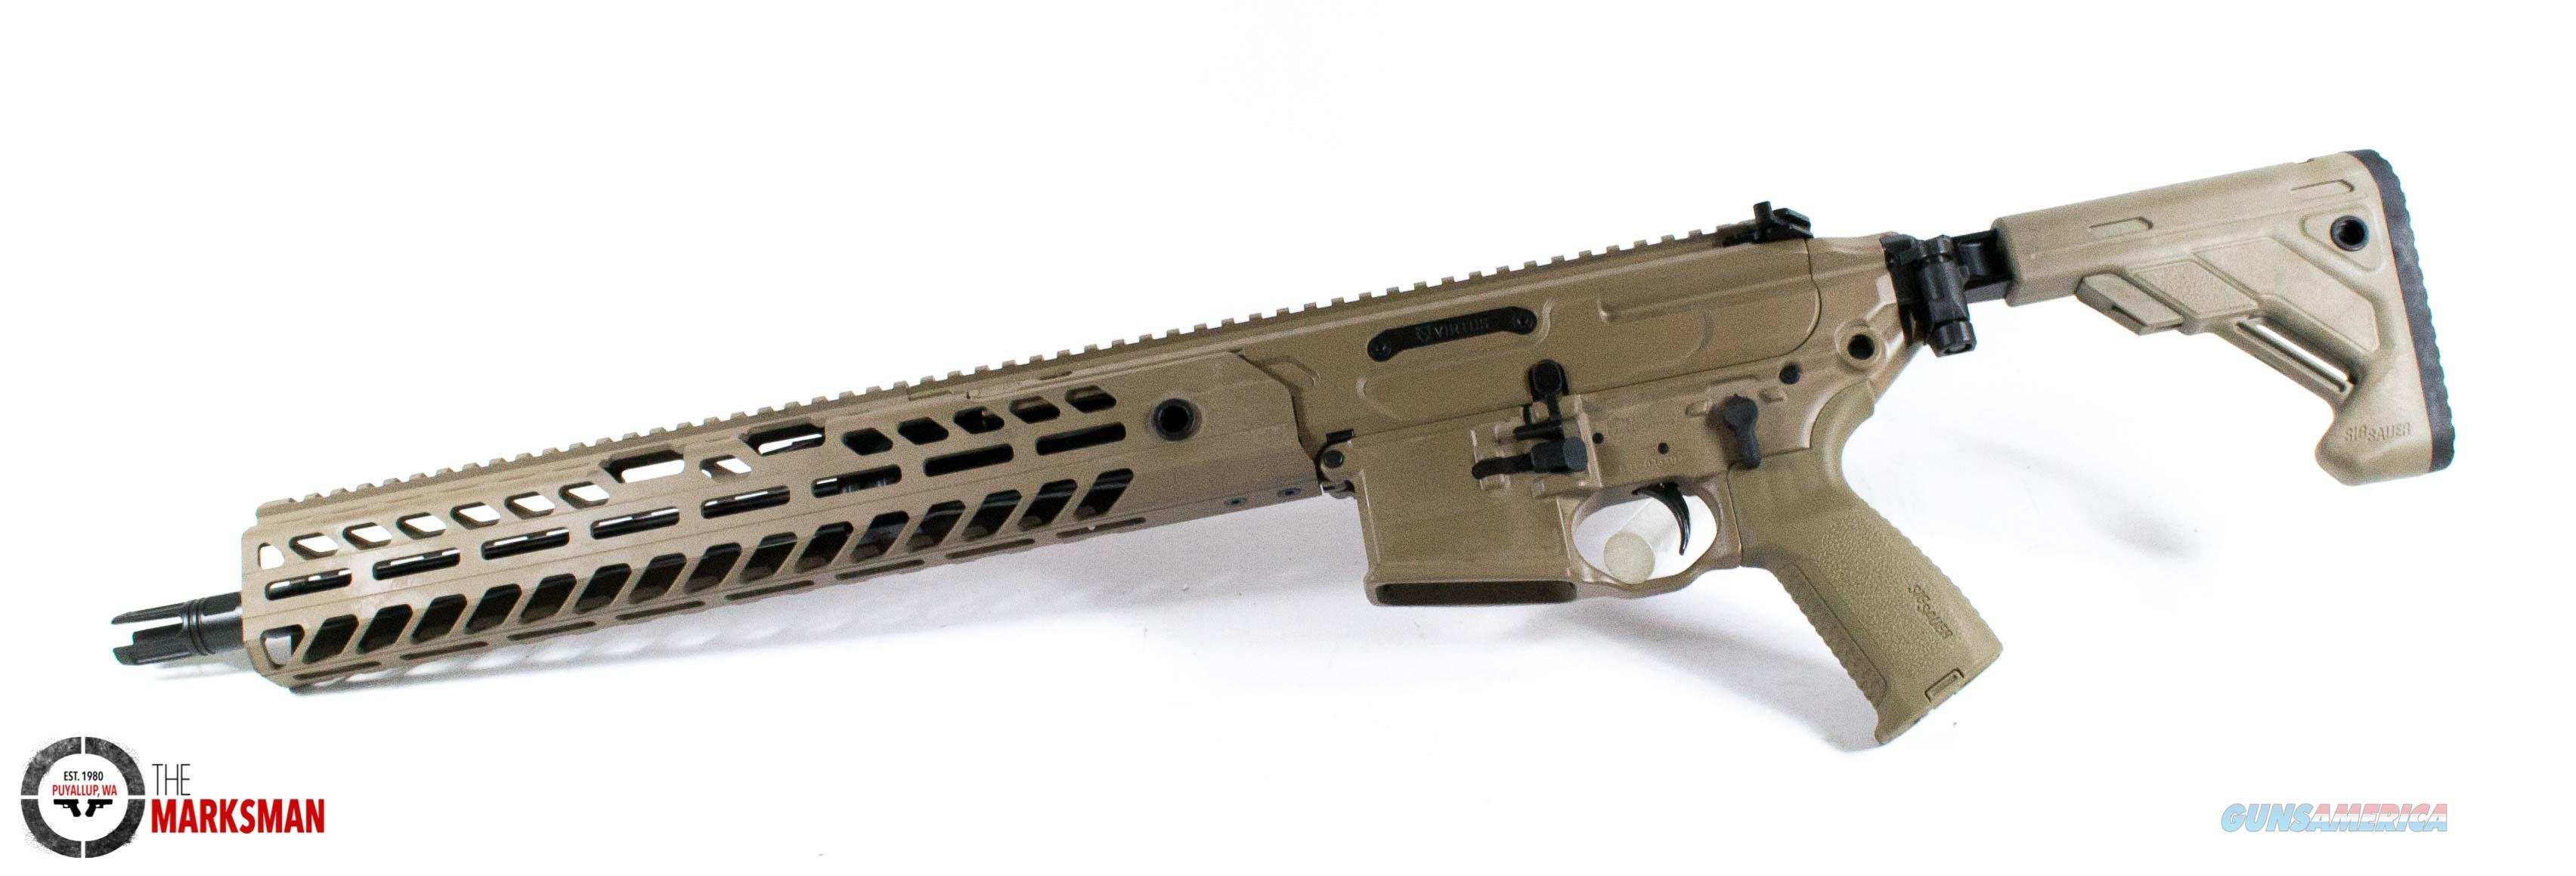 Sig Sauer MCX Virtus Patrol, .300 Blackout, Flat Dark Earth NEW Free Shipping  Guns > Rifles > Sig - Sauer/Sigarms Rifles